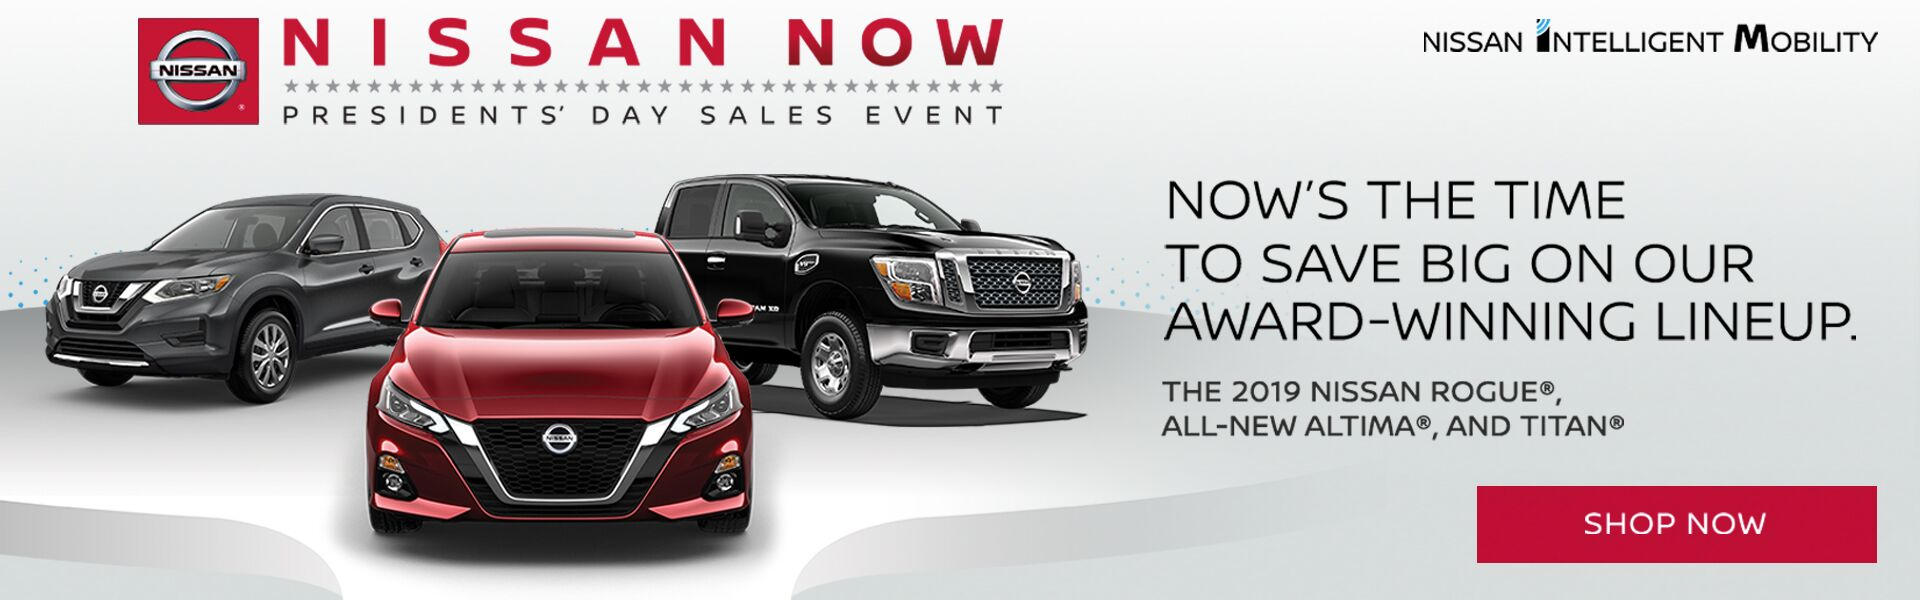 Nissan Now Event